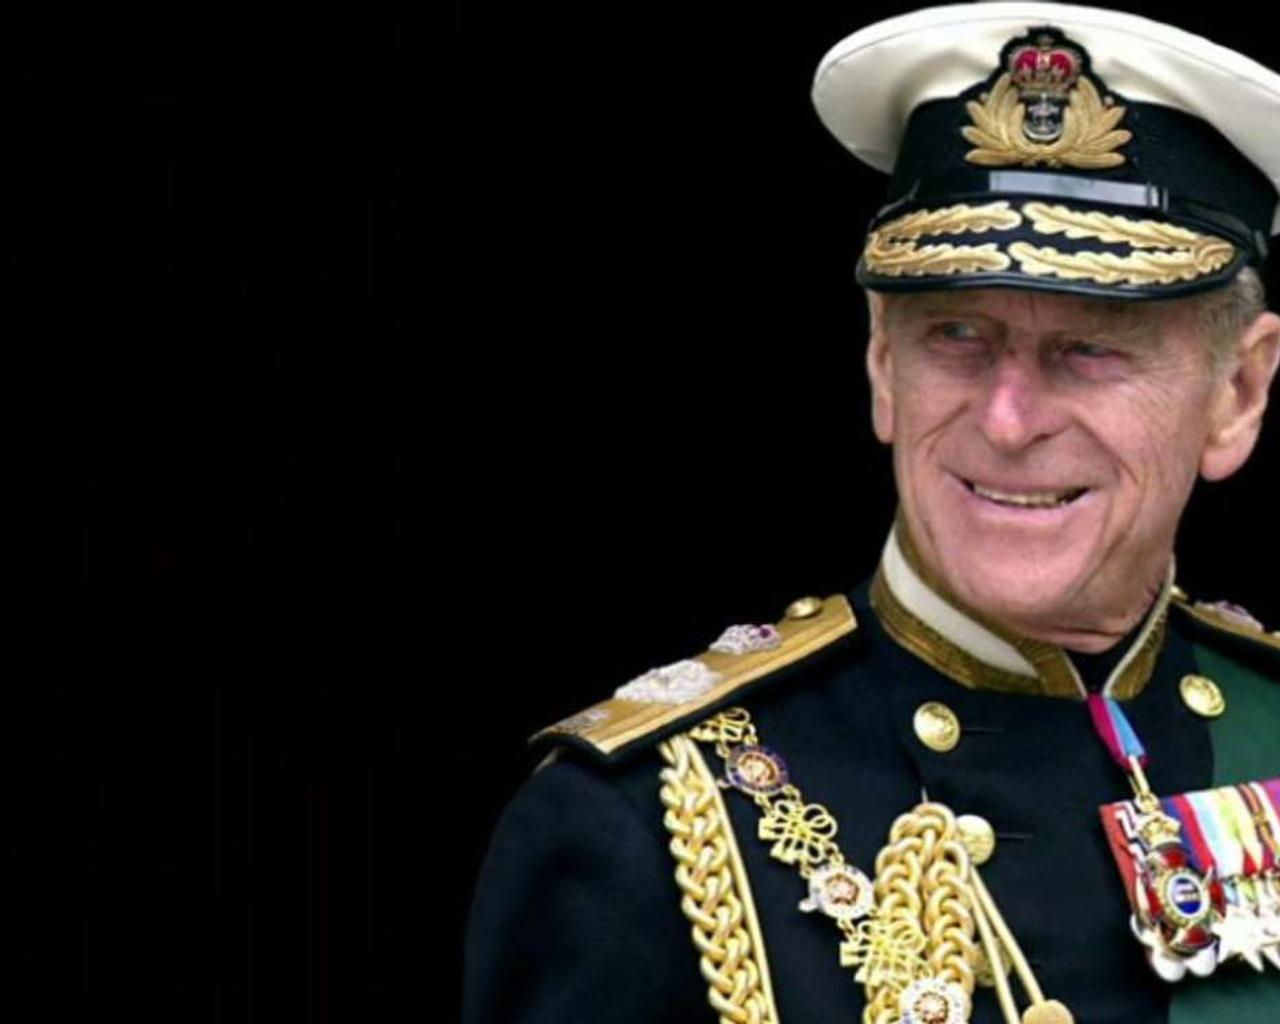 Queen Elizabeth II's husband, Prince Philip, dies at 99